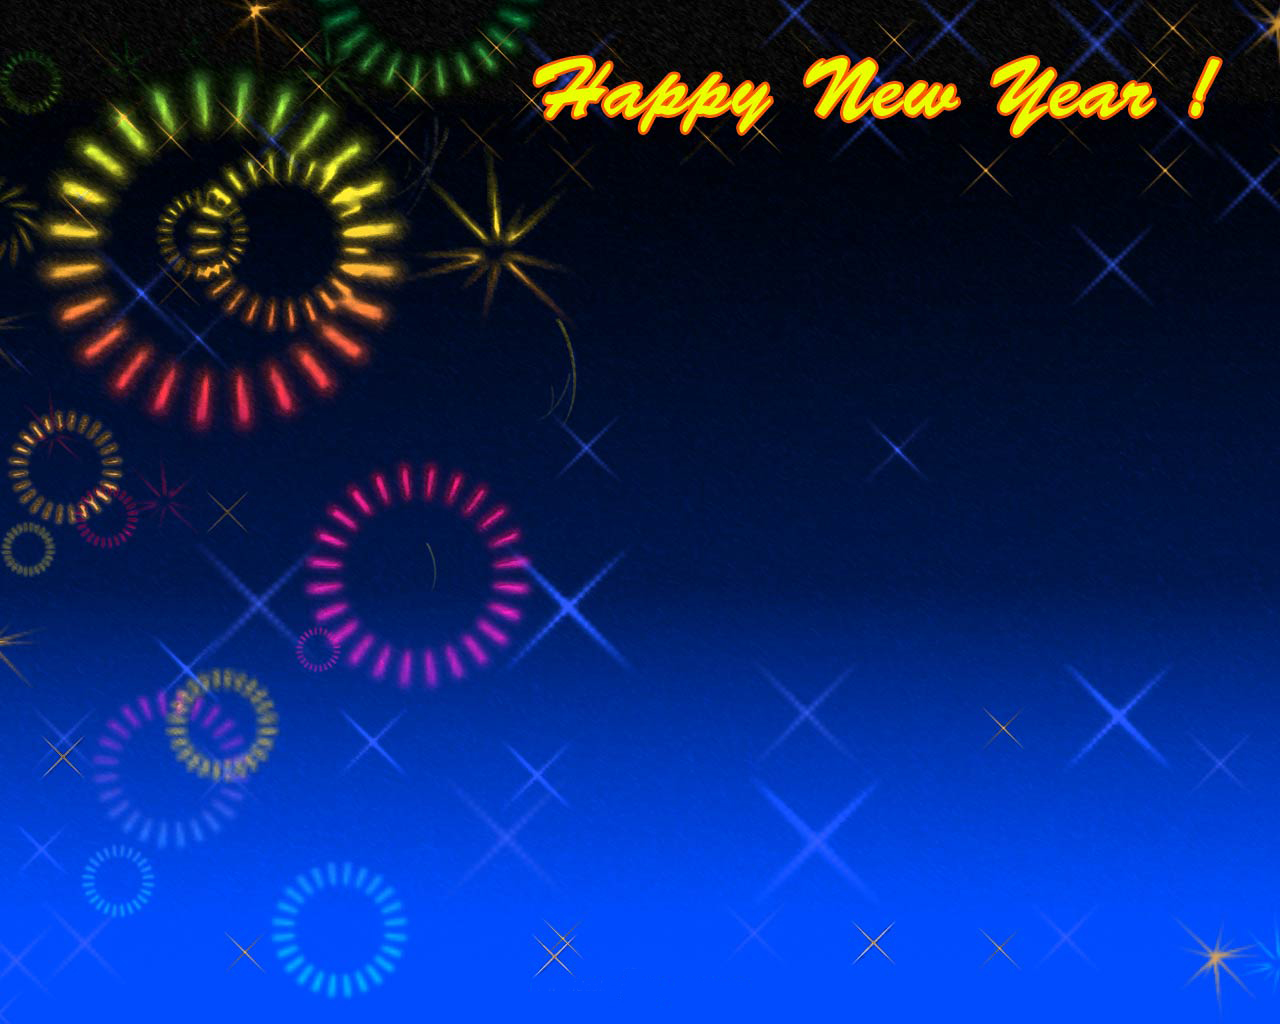 New year powerpoint happy new year 2017 powerpoint templates happy free download chinese new year powerpoint backgrounds new year powerpoint toneelgroepblik